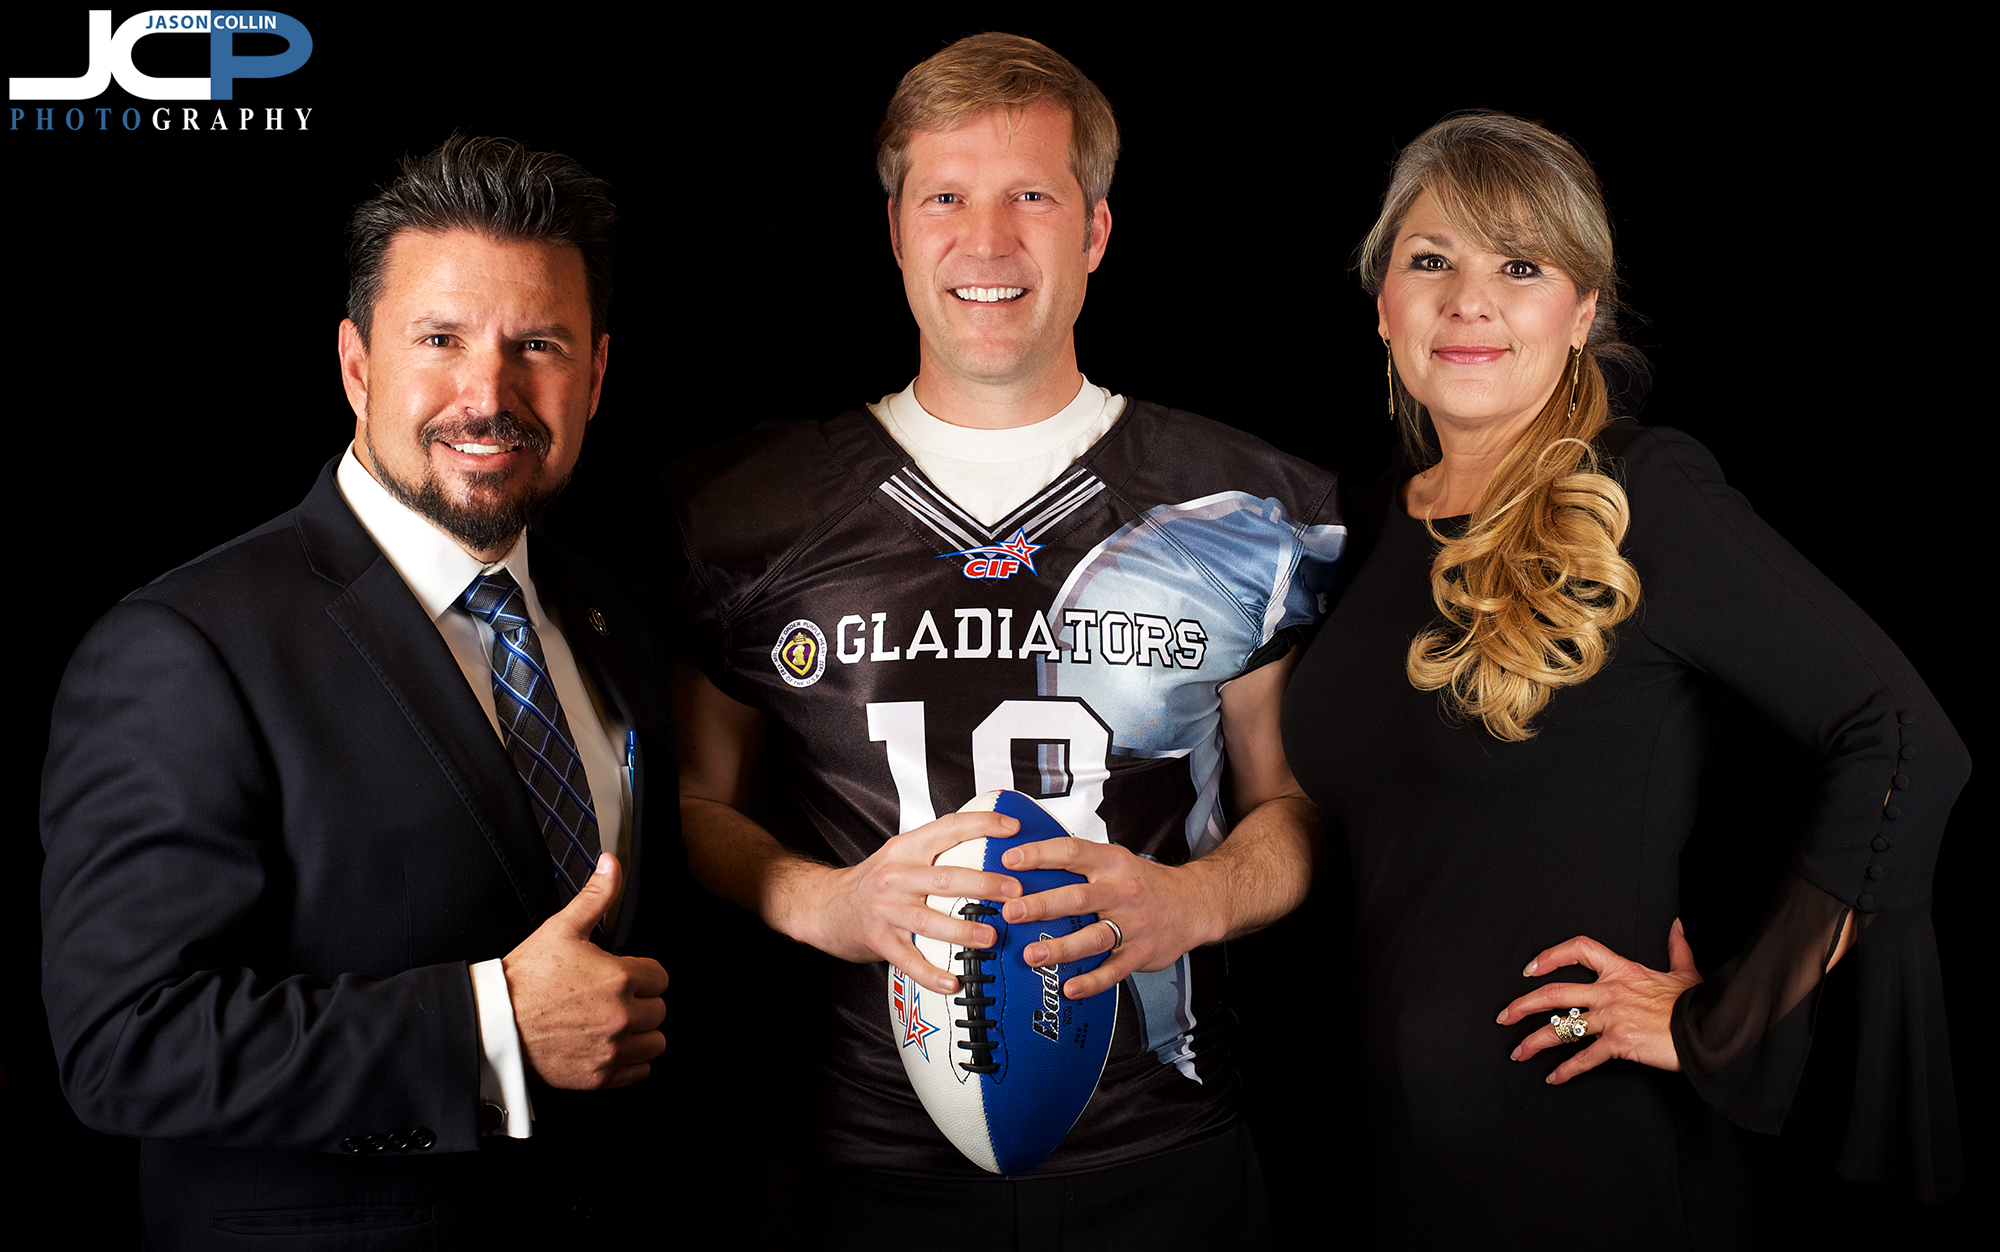 Majority owner John Lopez of the Duke City Gladiators with Mayor Tim Keller in Albuquerque, New Mexico -Nikon D750 with Nikkor 50mm f/1.8G @ f/5.6 1/250th ISO 200 - Strobist: two Cheetahstand 12x55 gridded strip boxes with Nikon SB-800 speedlights to left and right